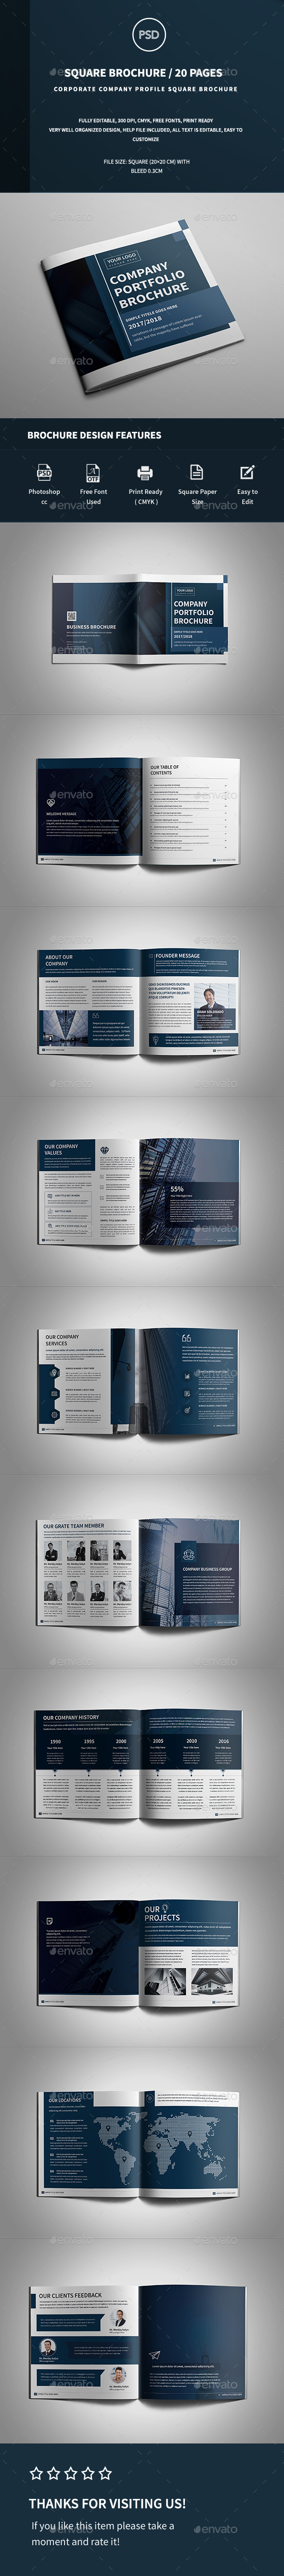 Square Company Profile Brochure - Corporate Brochures